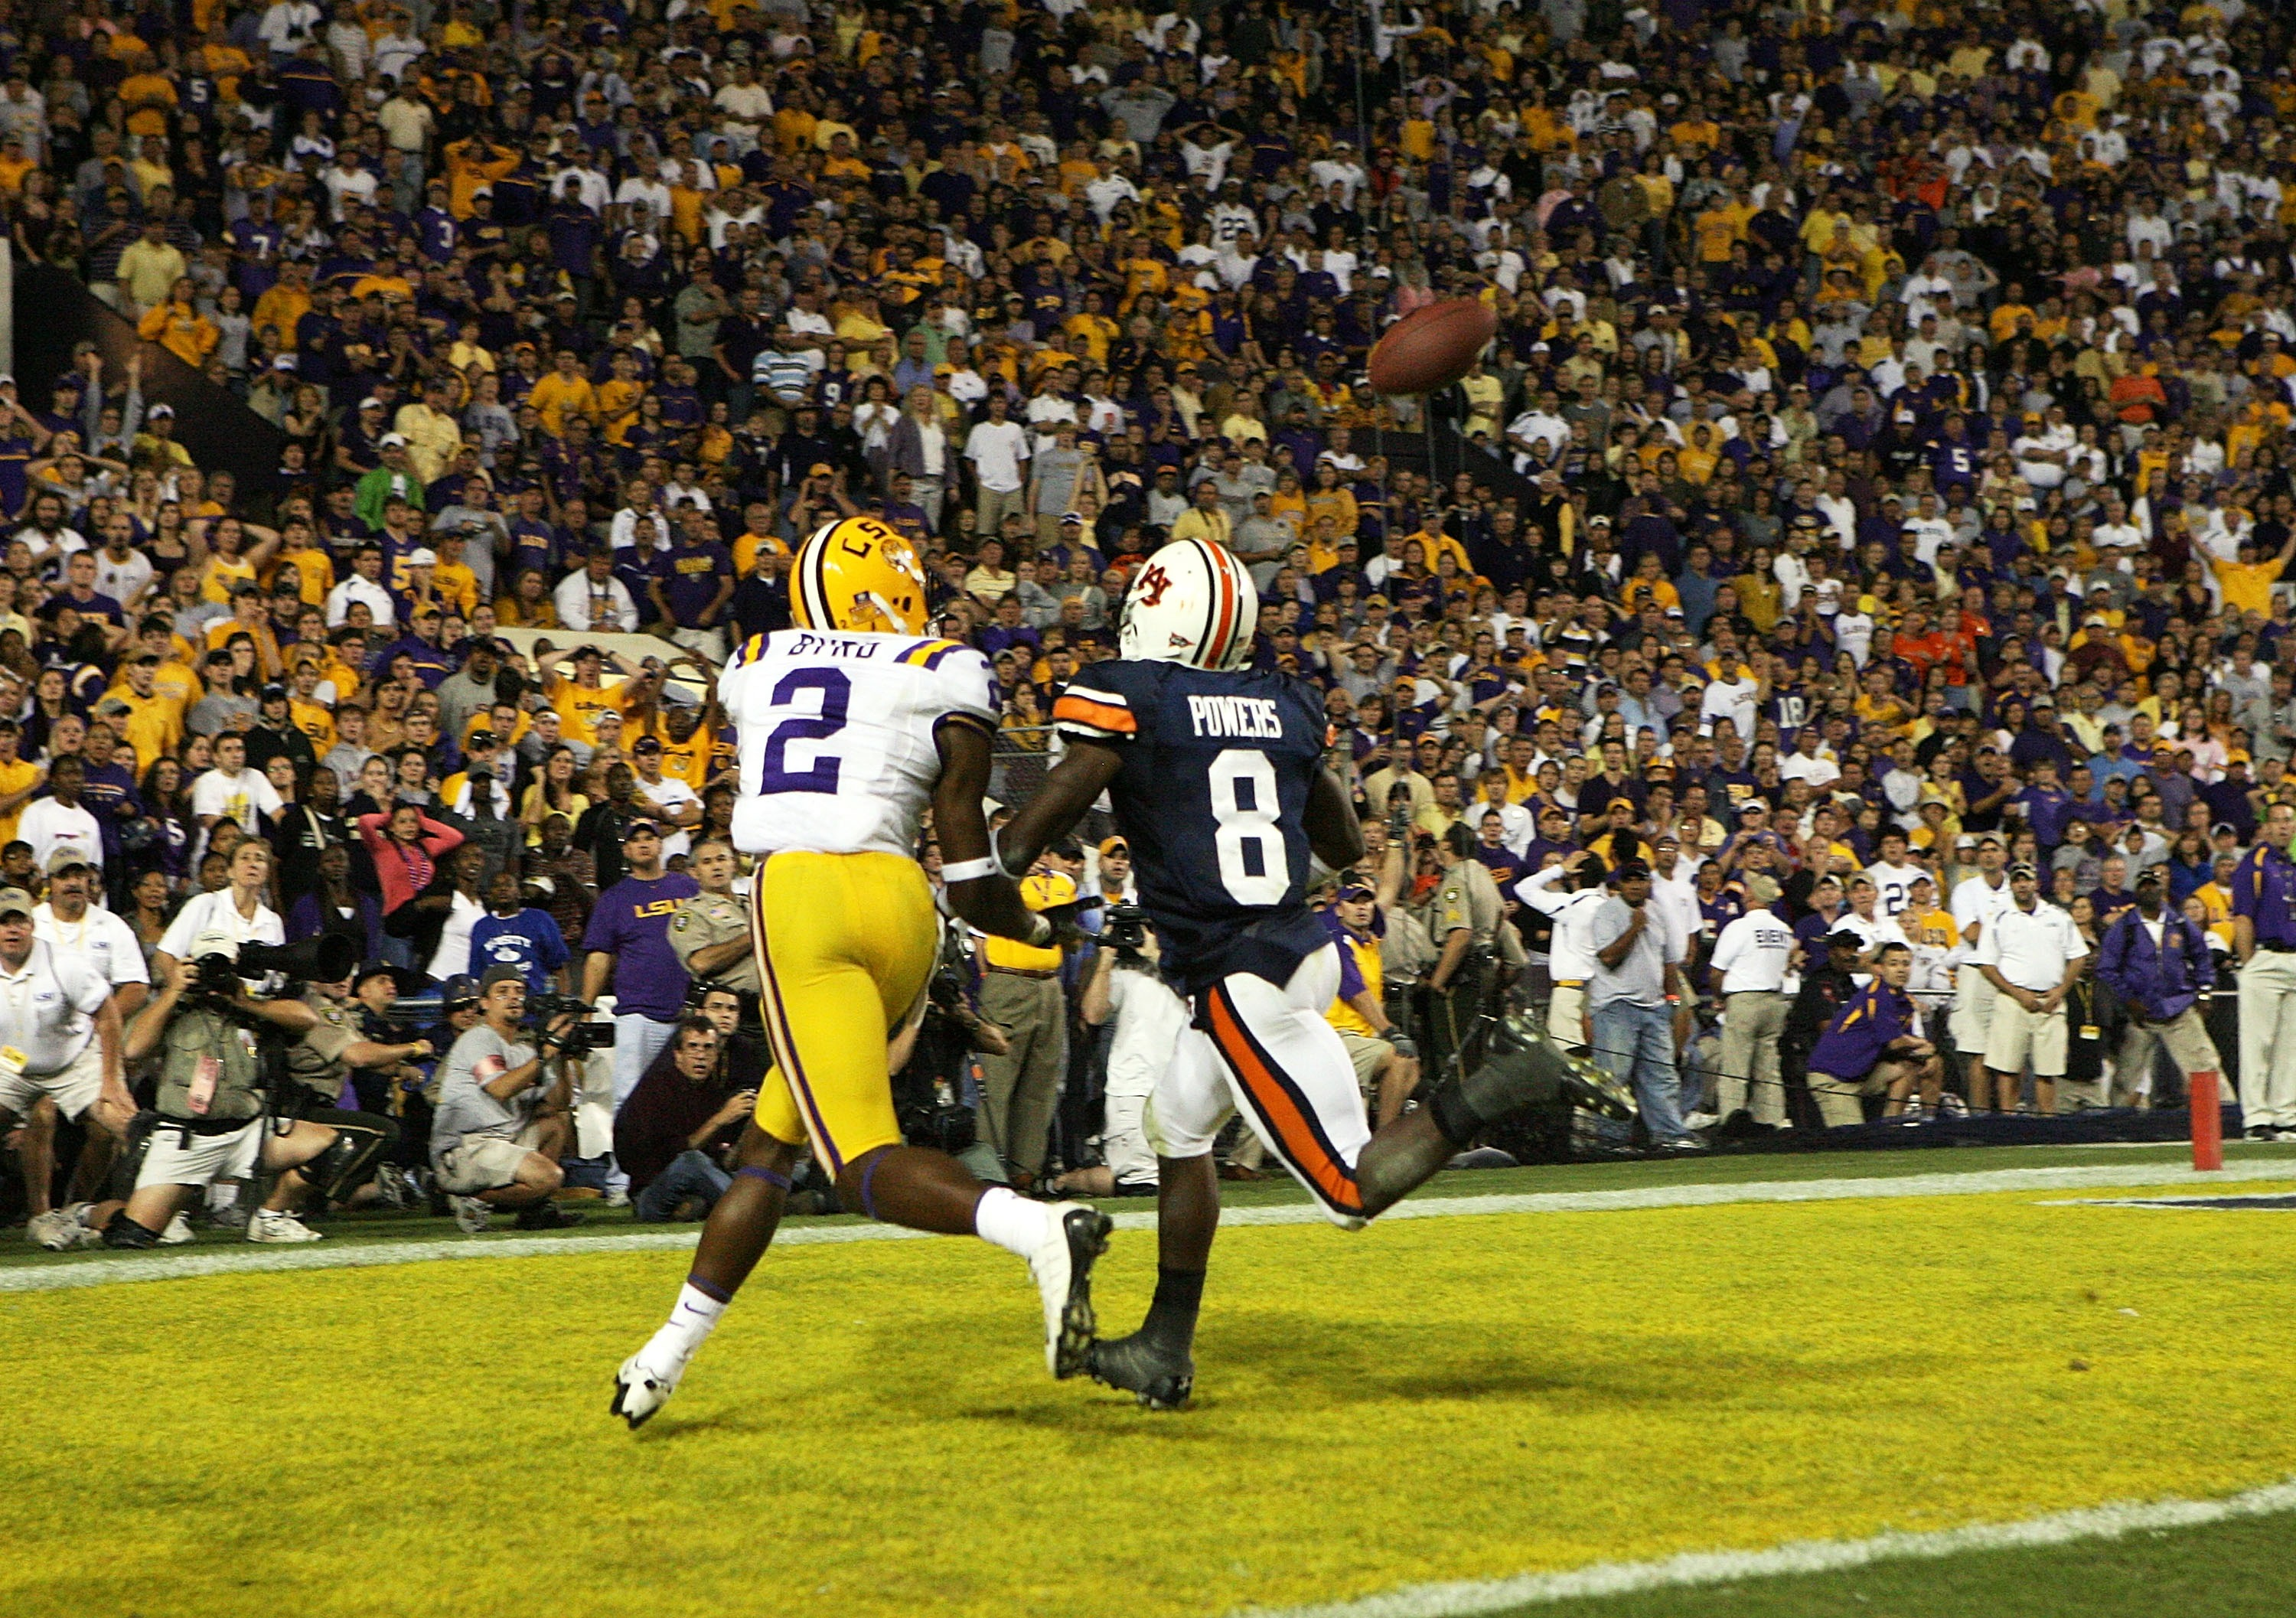 BATON ROUGE, LA - OCTOBER 20:  Defensive back Jerraud Powers #8 of the Auburn Tigers can't stop wide receiver Demetrius Byrd #2 of the LSU Tigers from making the game-winning catch at Tiger Stadium on October 20, 2007 in Baton Rouge, Louisiana. LSU defeat